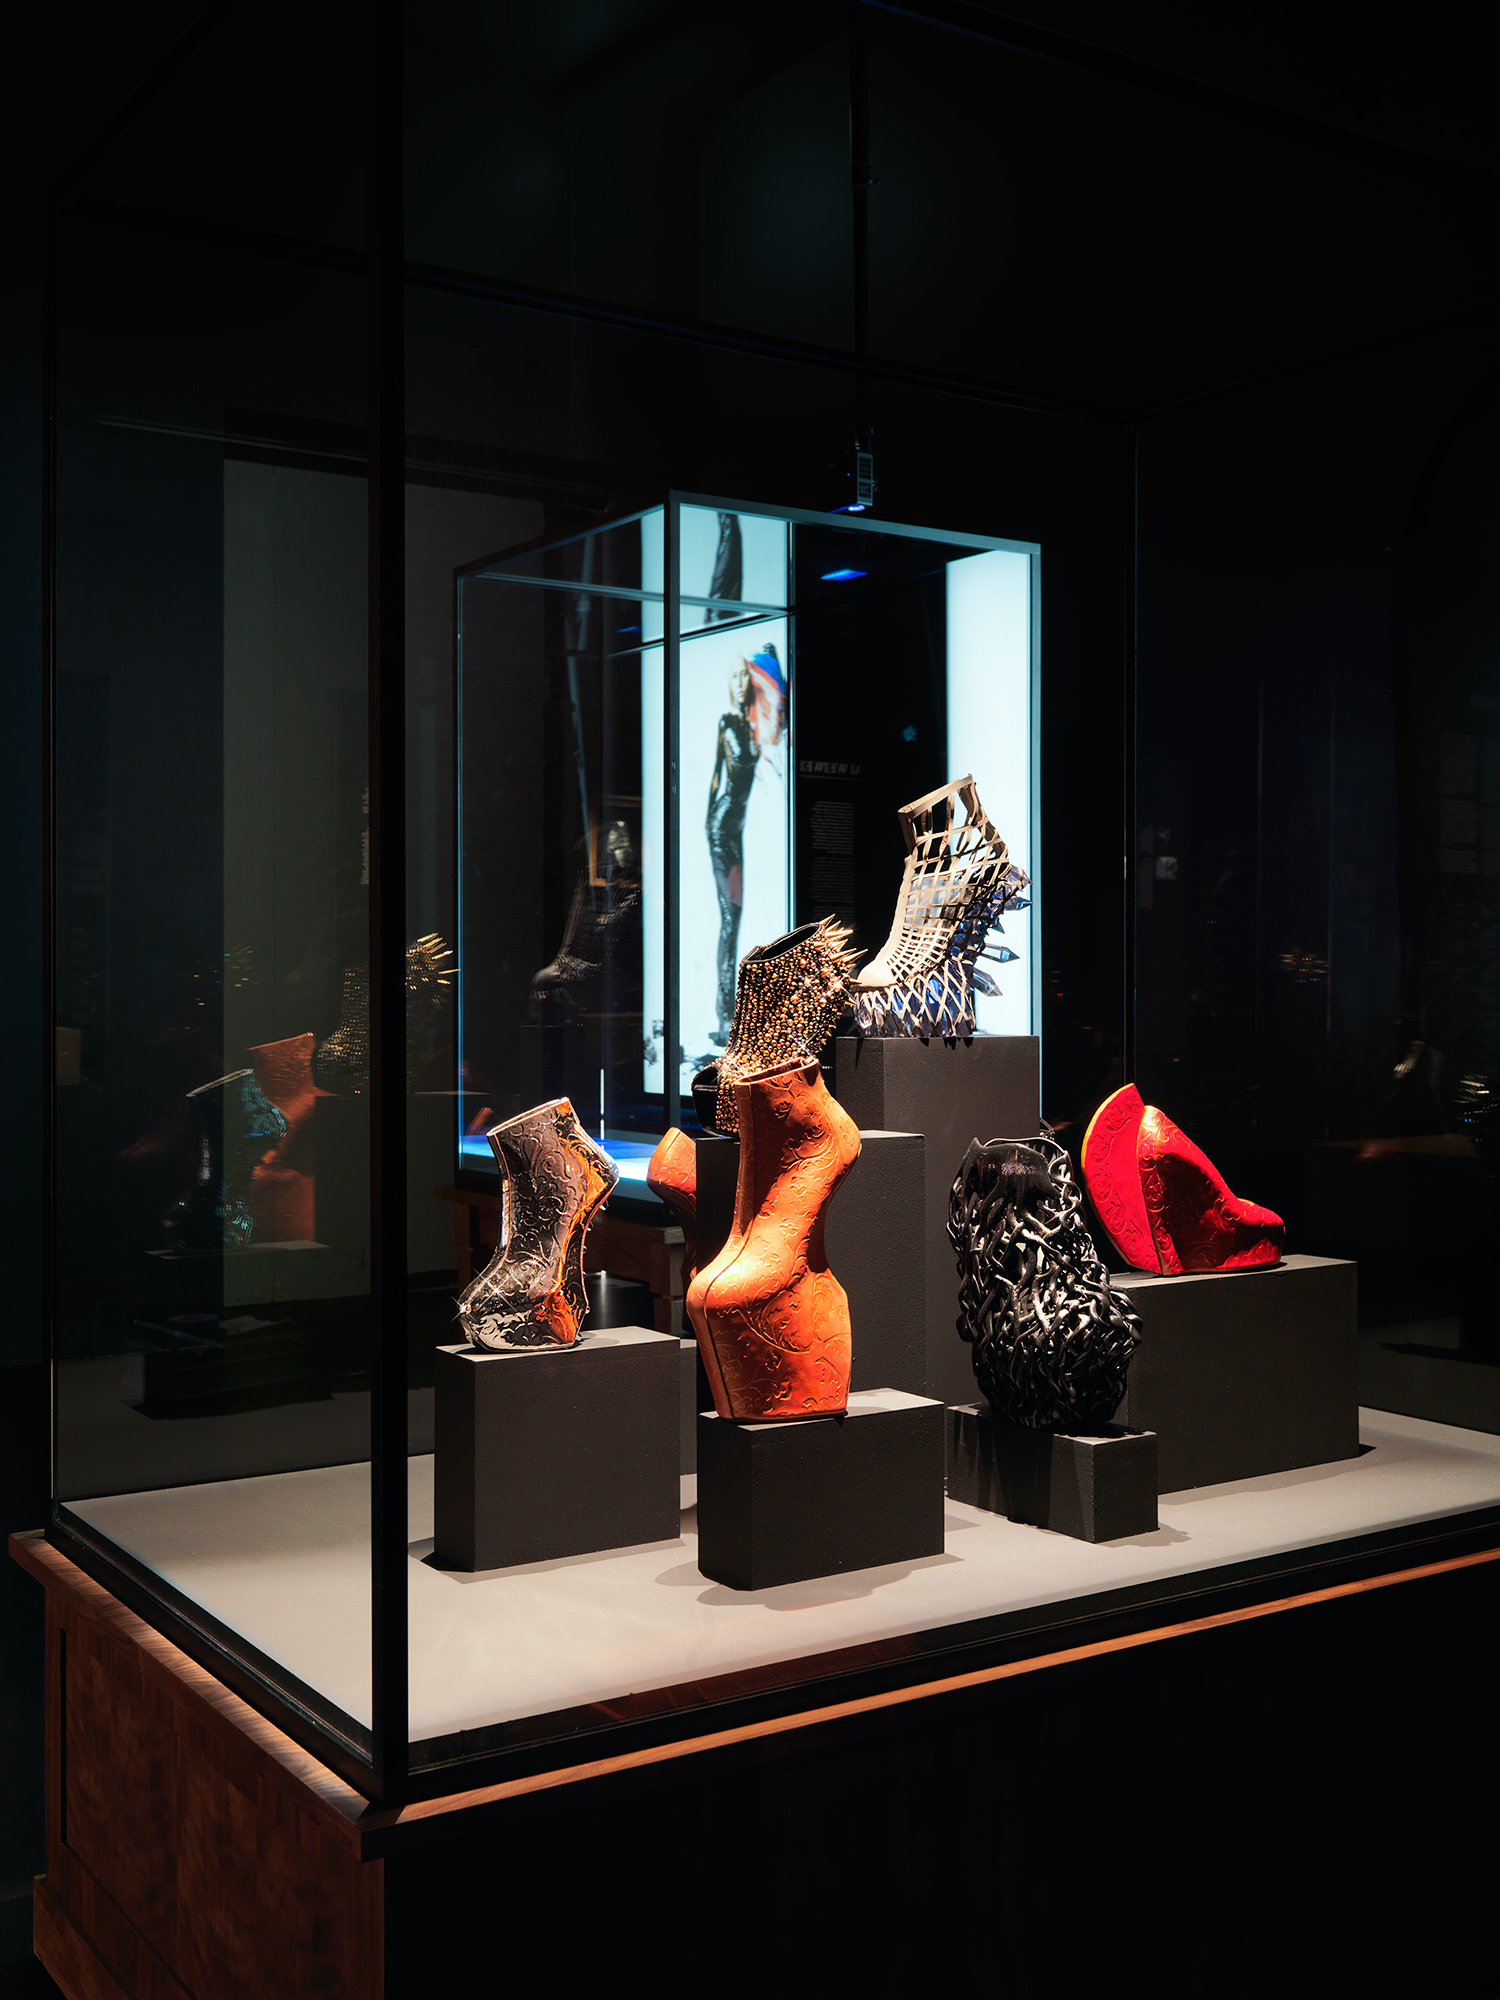 Display case at 'Footprint – The Track of Shoes in Fashion' exhibition, Photograph by Koende Waal, Source: MoMu